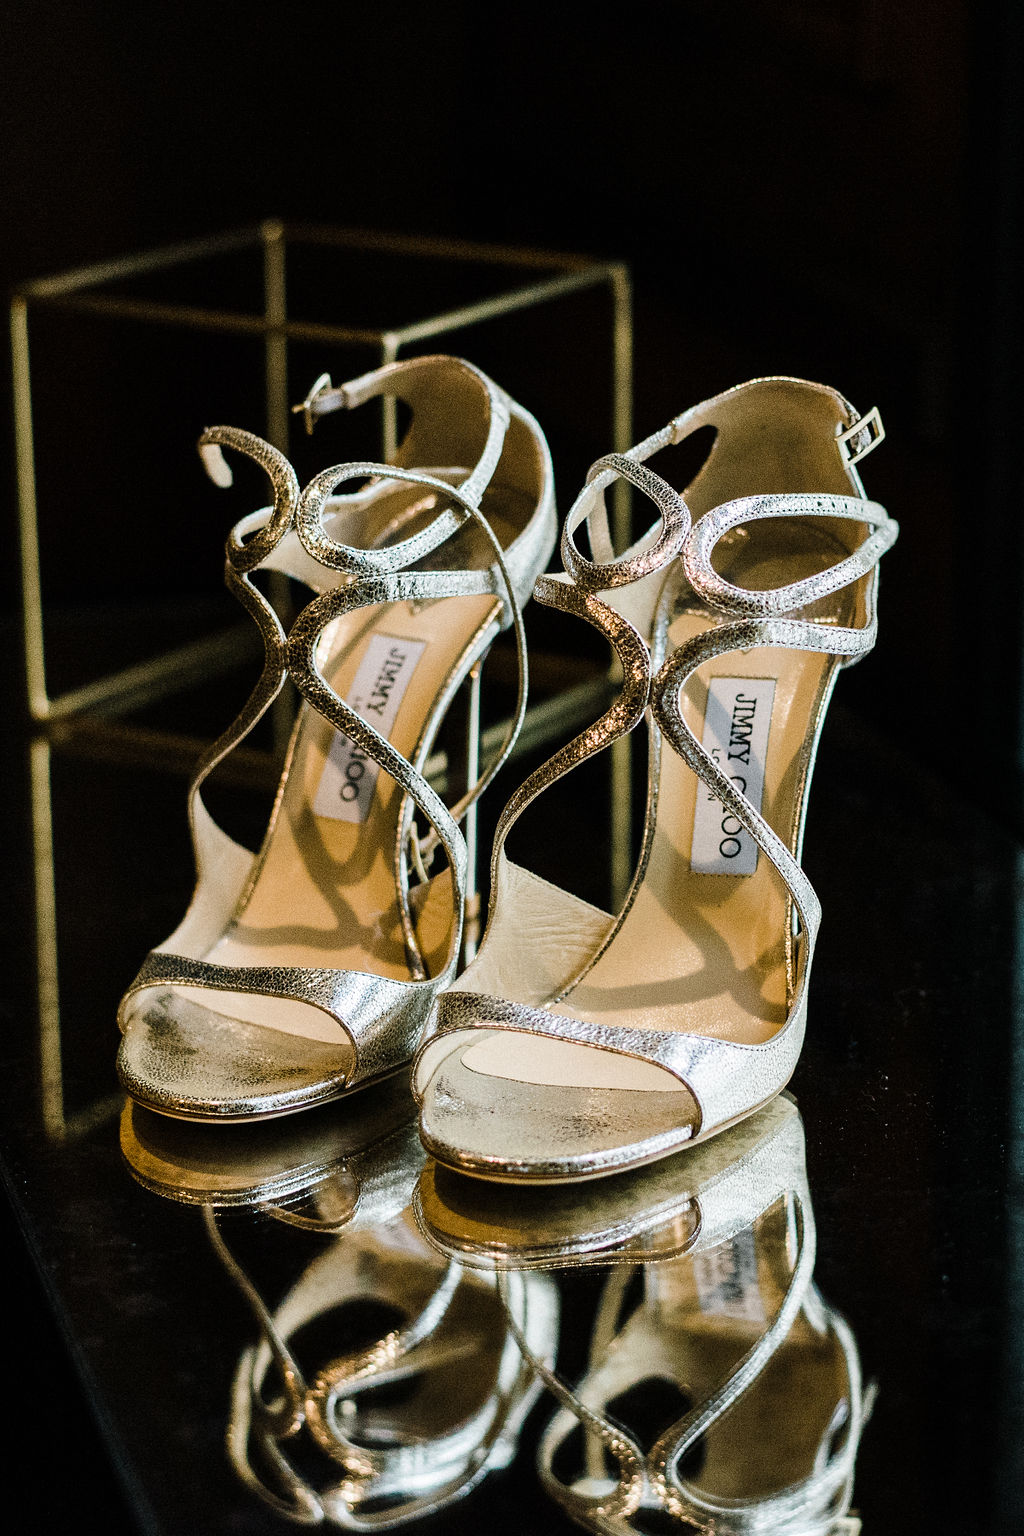 DSC_4188-2.jpgGreat Gatsby themed wedding for Tyler & Melanie Anderson at the Goodwin hotel in Hartford, CT. Jimmy Choo wedding shoes.  - Pearl Weddings & Event